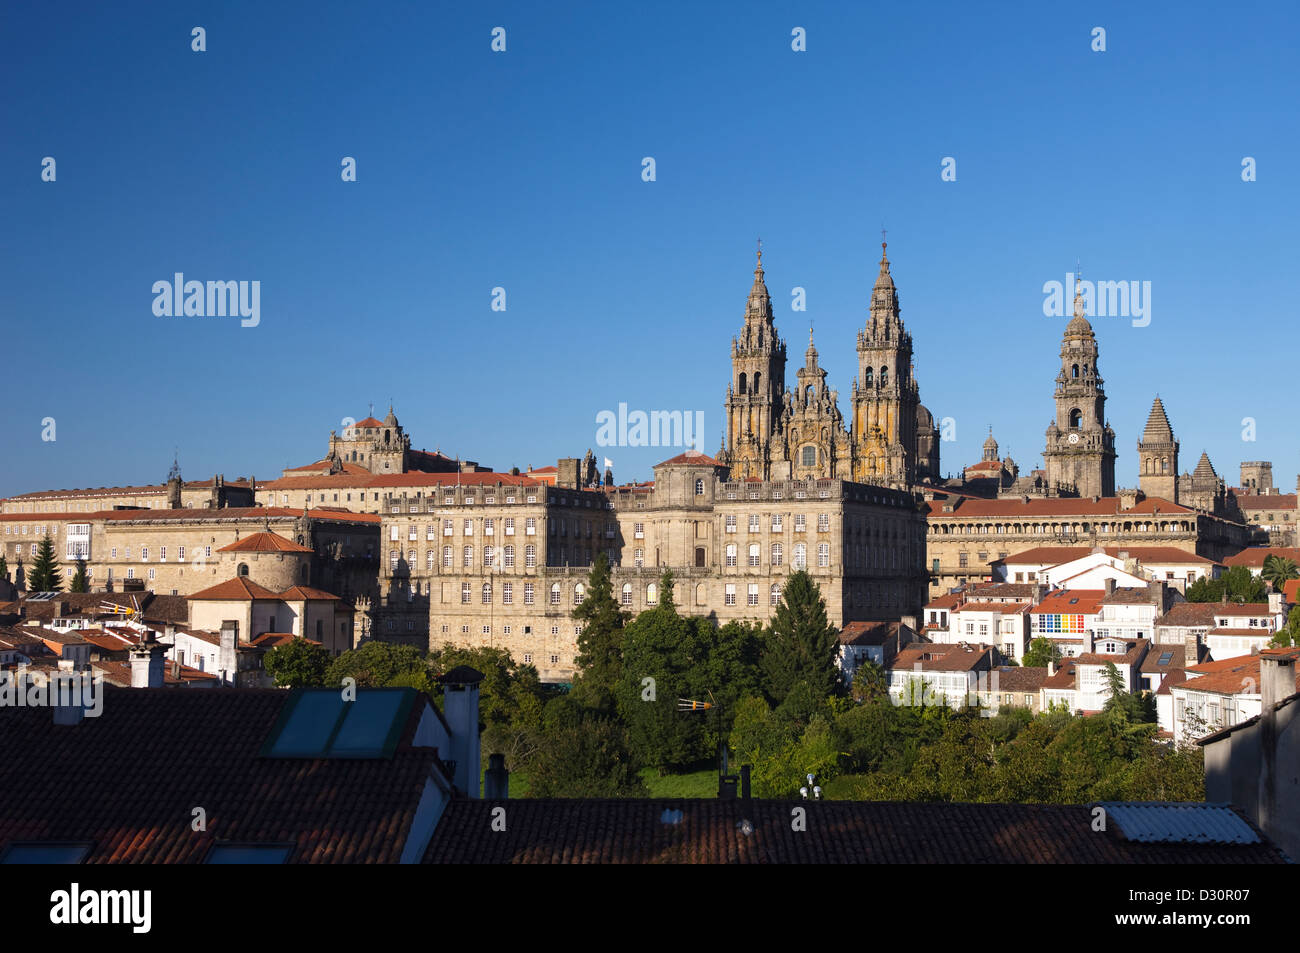 CATHEDRAL OF SAINT JAMES OLD CITY SKYLINE SANTIAGO DE COMPOSTELA GALICIA SPAIN Stock Photo